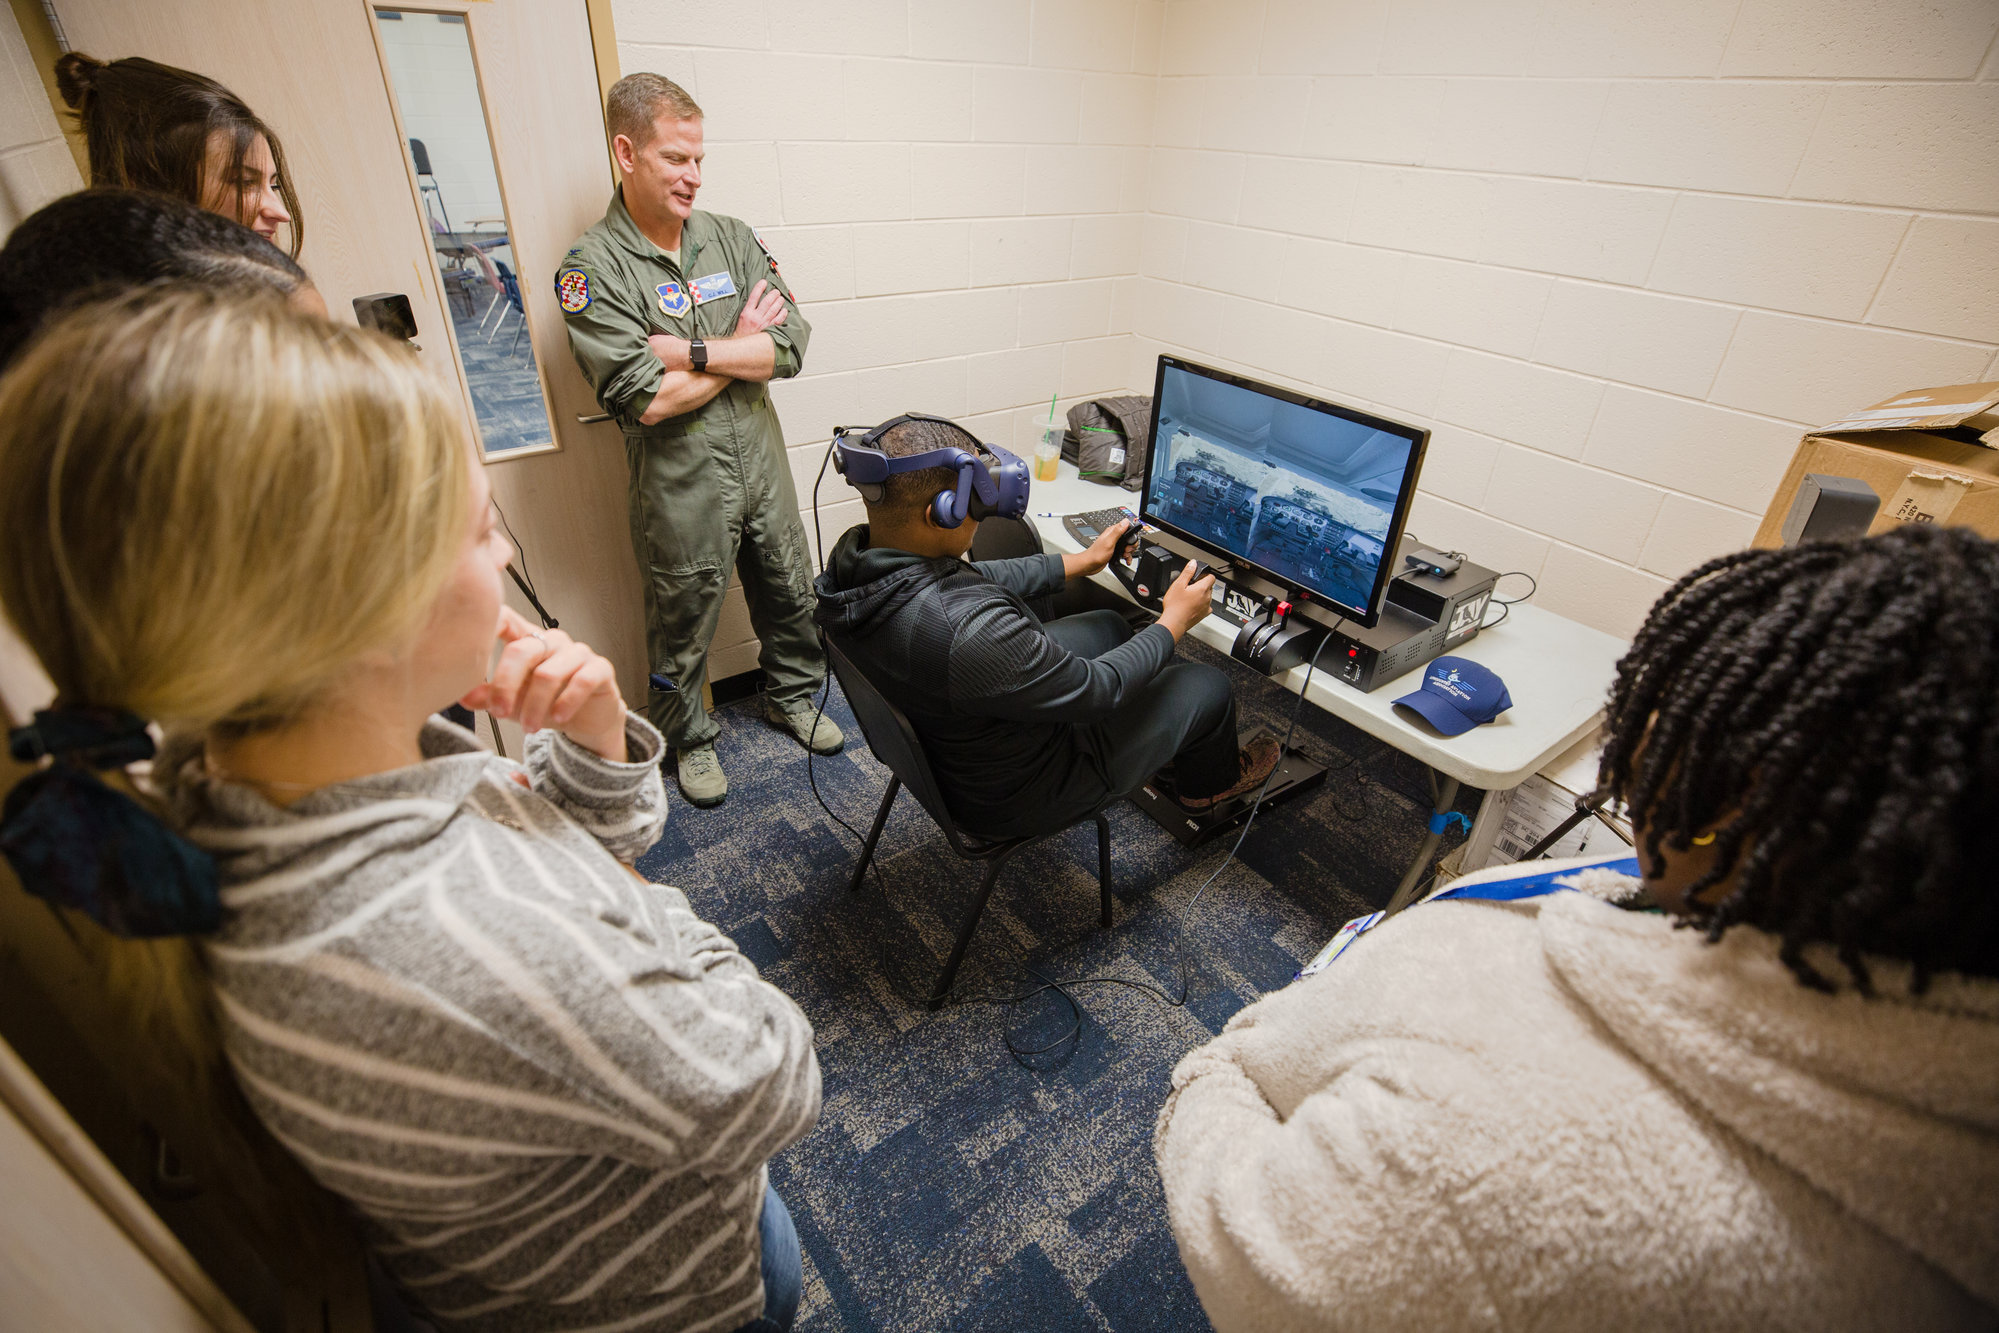 A Scott's Branch High School student uses a flight simulator as Col. Will and other students look on.